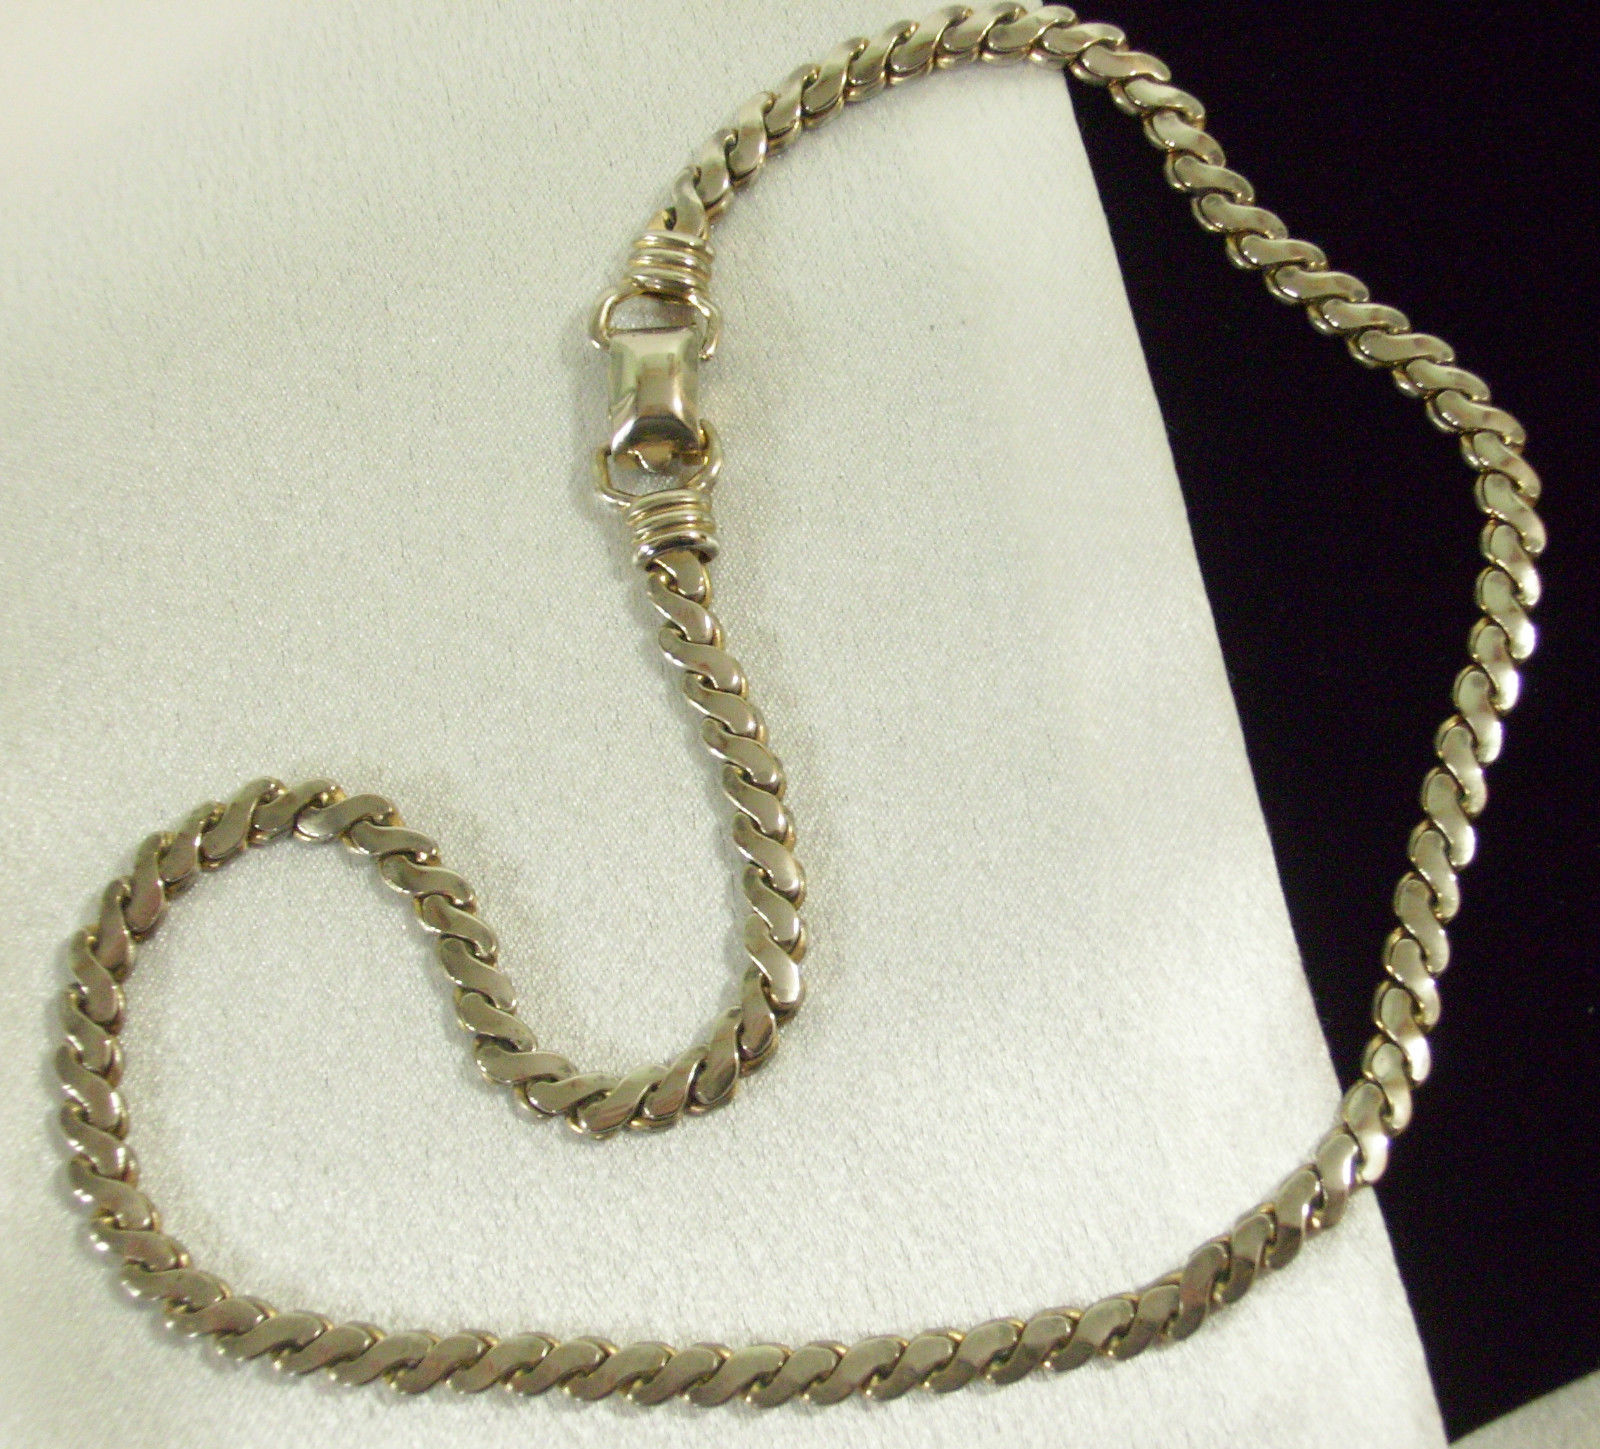 CORO Silver Plate Necklace Serpentine Chain CHOKER Vintage Estate Career